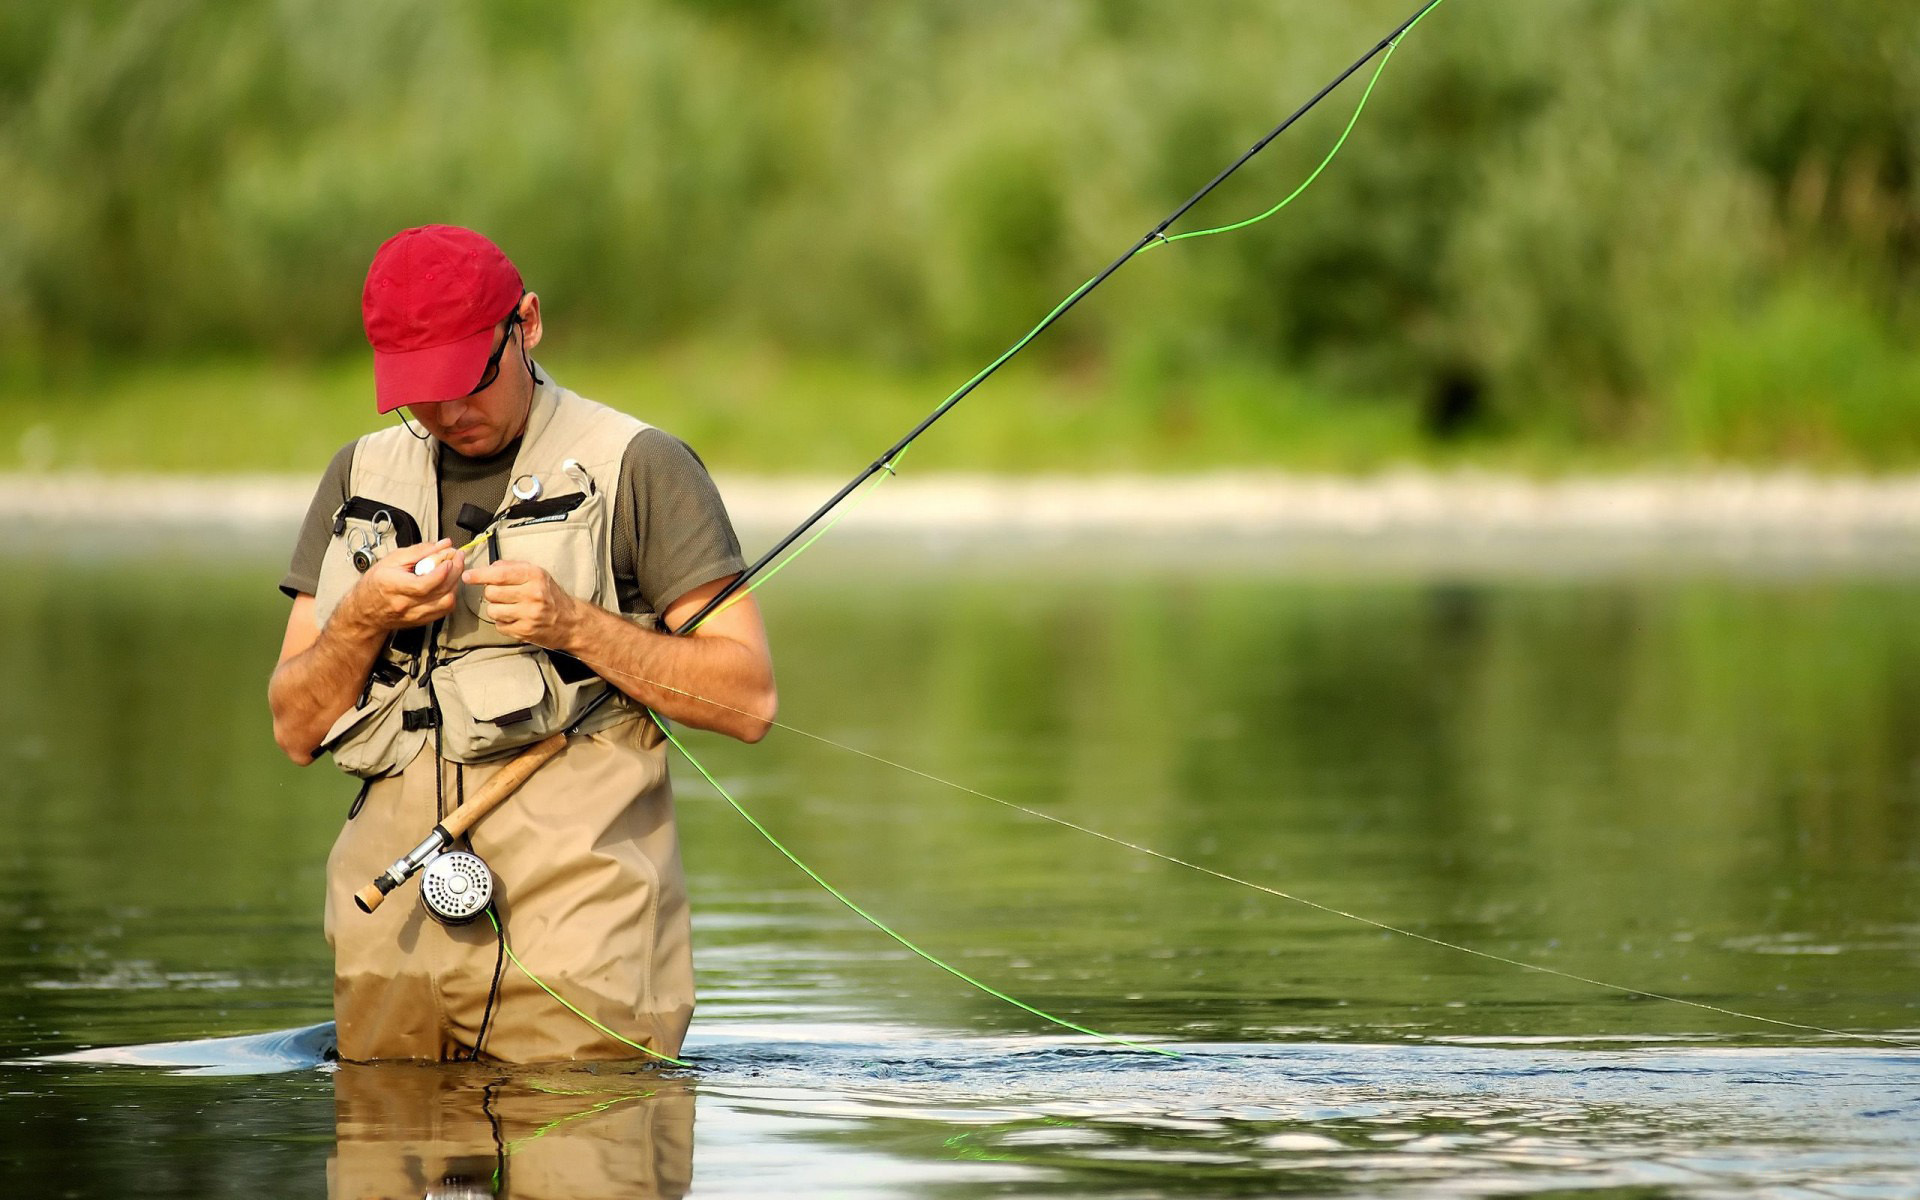 To set this a fisherman fly fishing as wallpaper background on your Desktop, SmartPhone, Tablet, Laptop, iphone, ipad click above to open in a new window in ...